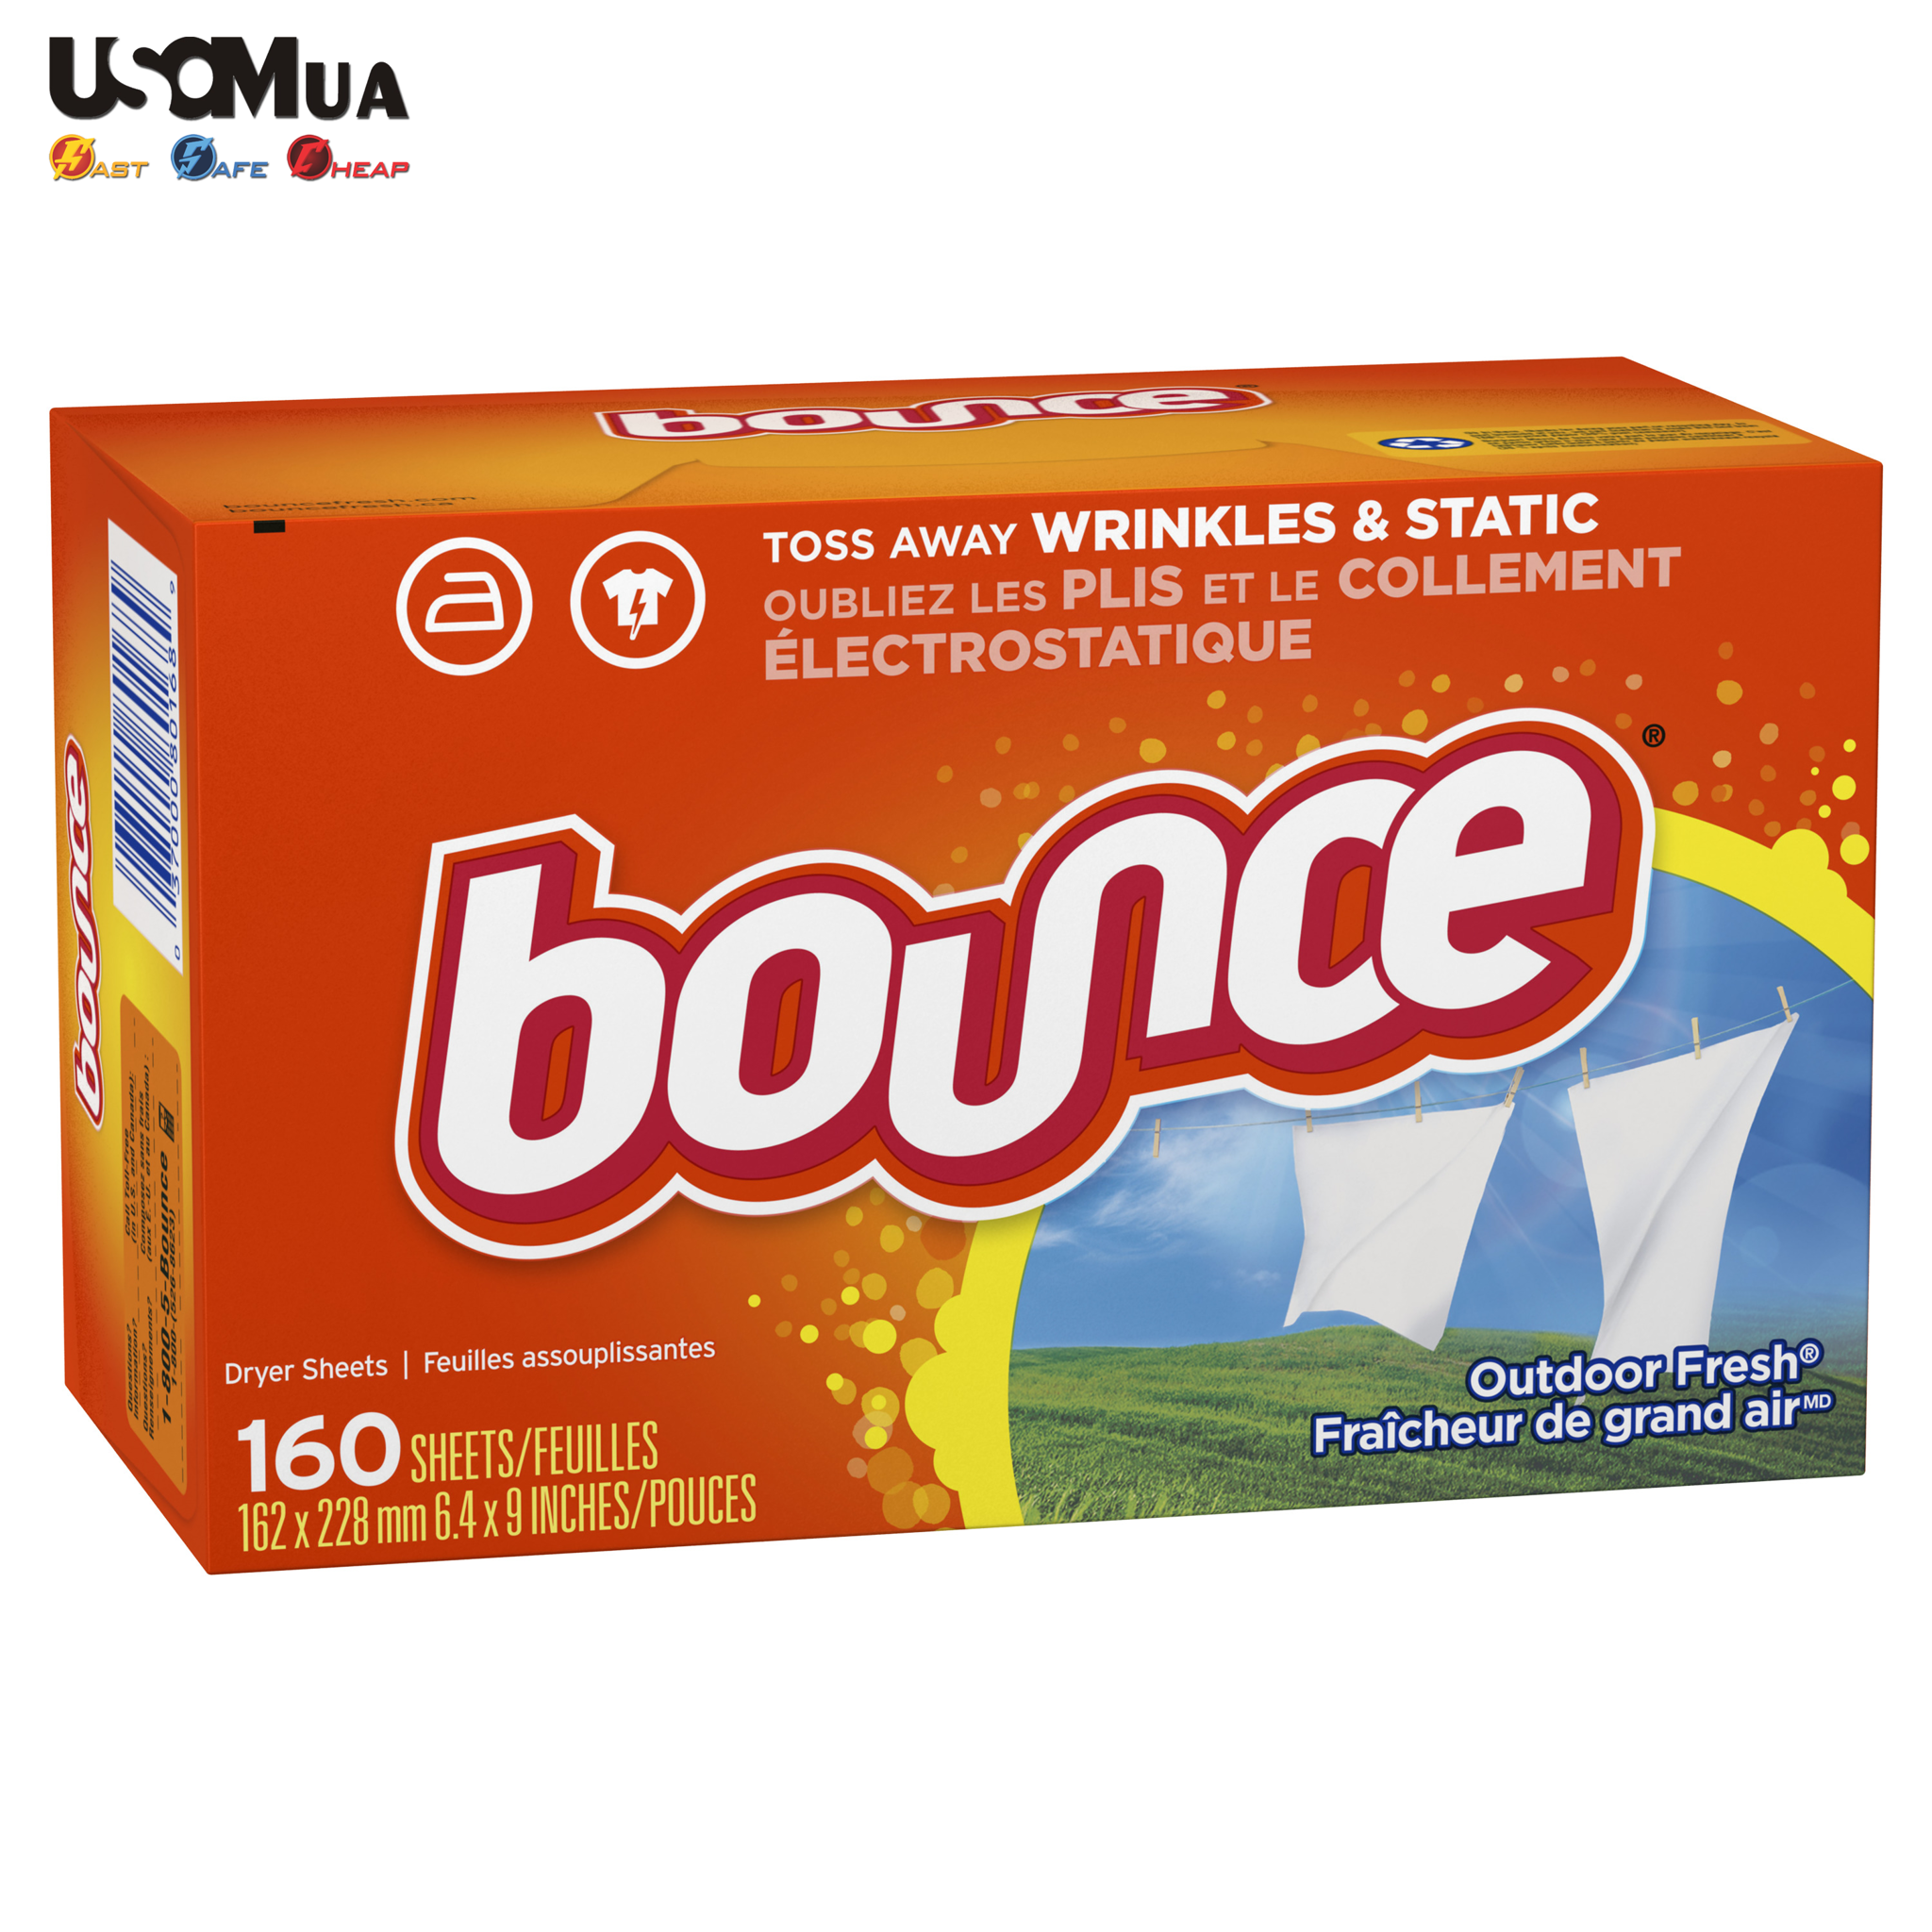 Giấy Thơm Bounce, Outdoor Fresh